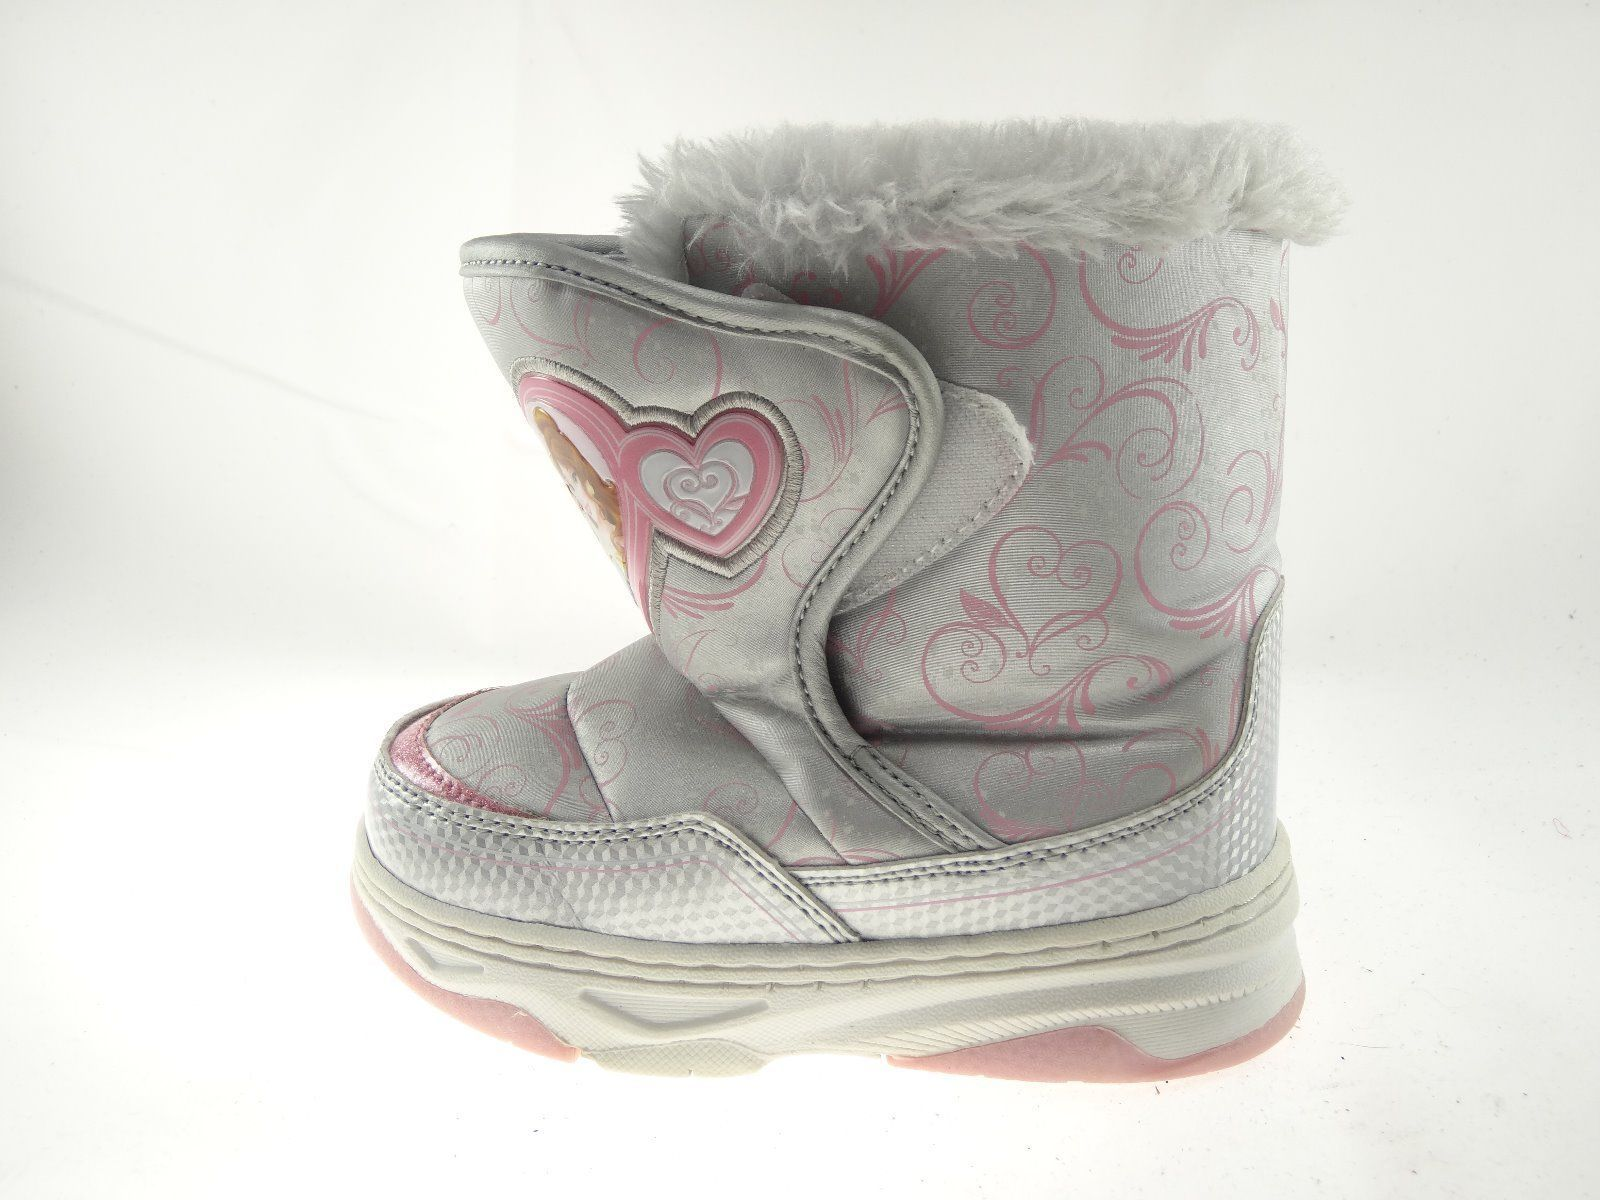 Disney Nala Silver Gray Size 9/10 Girls Princess Winter & Snow Boots image 3